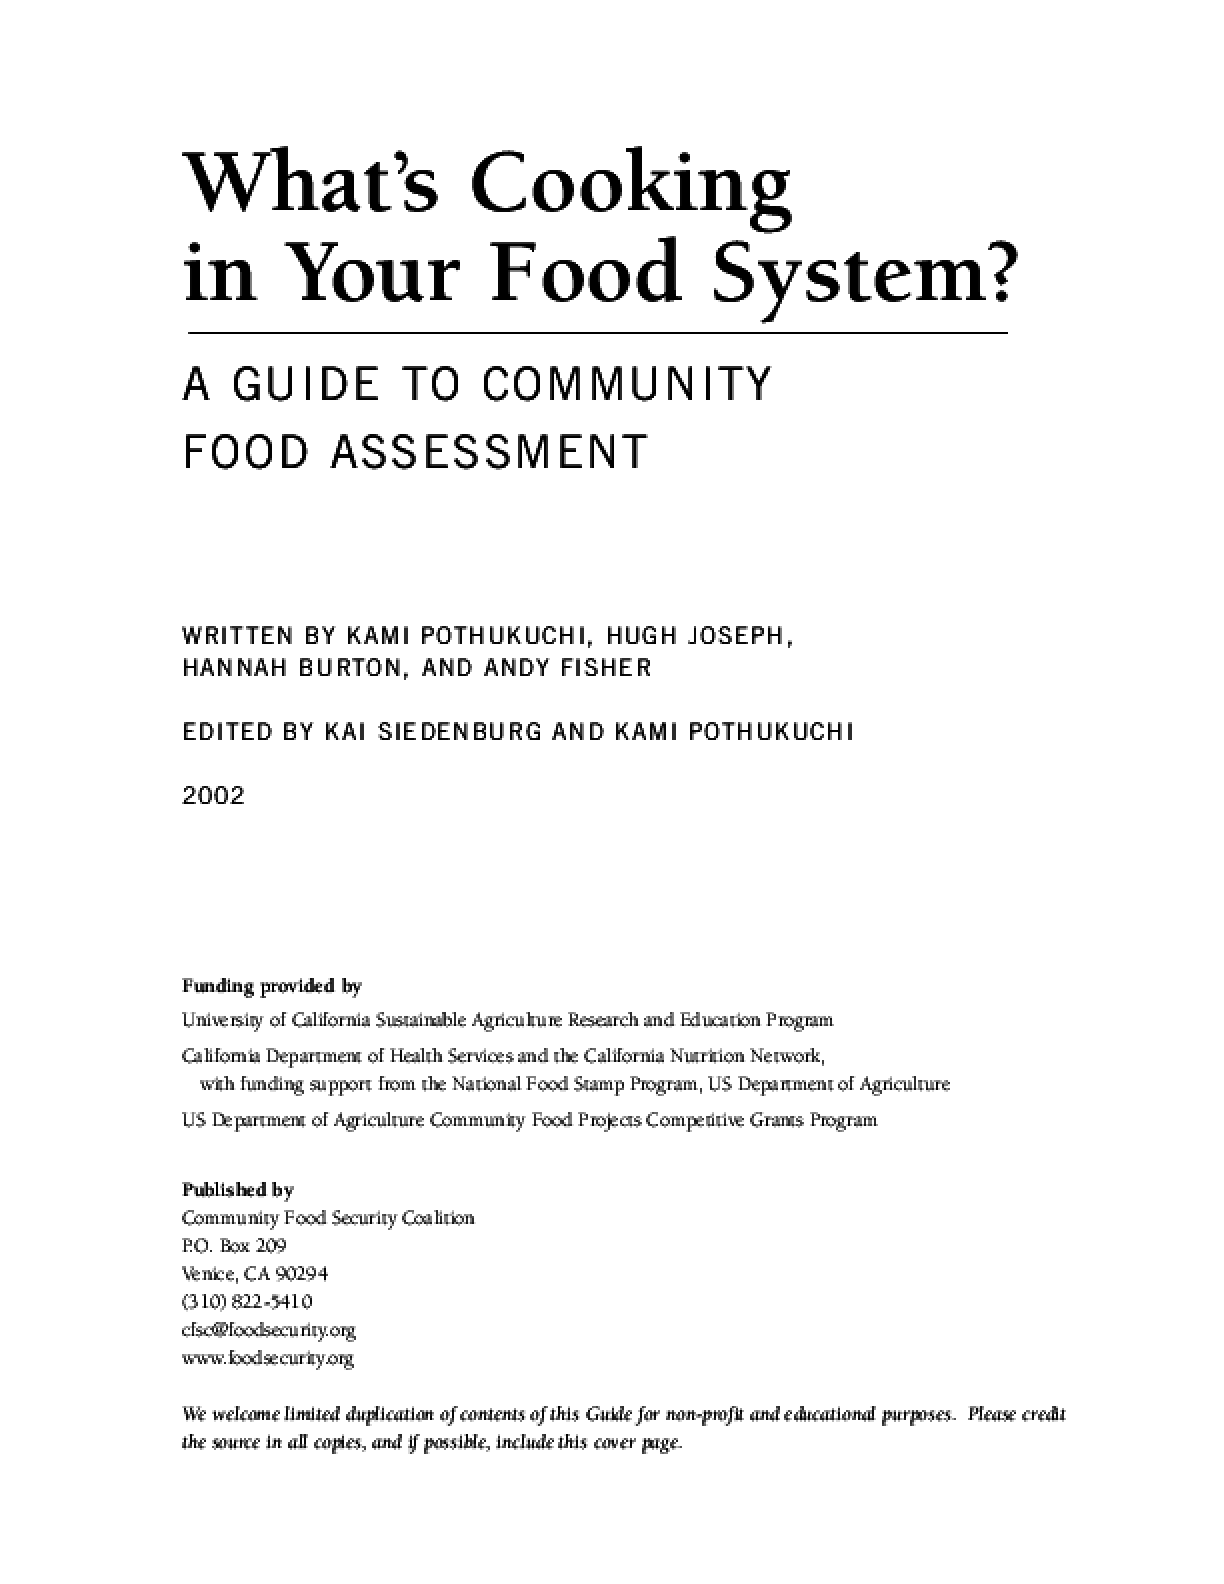 What's Cooking in Your Food System? A Guide to Community Food Assessment